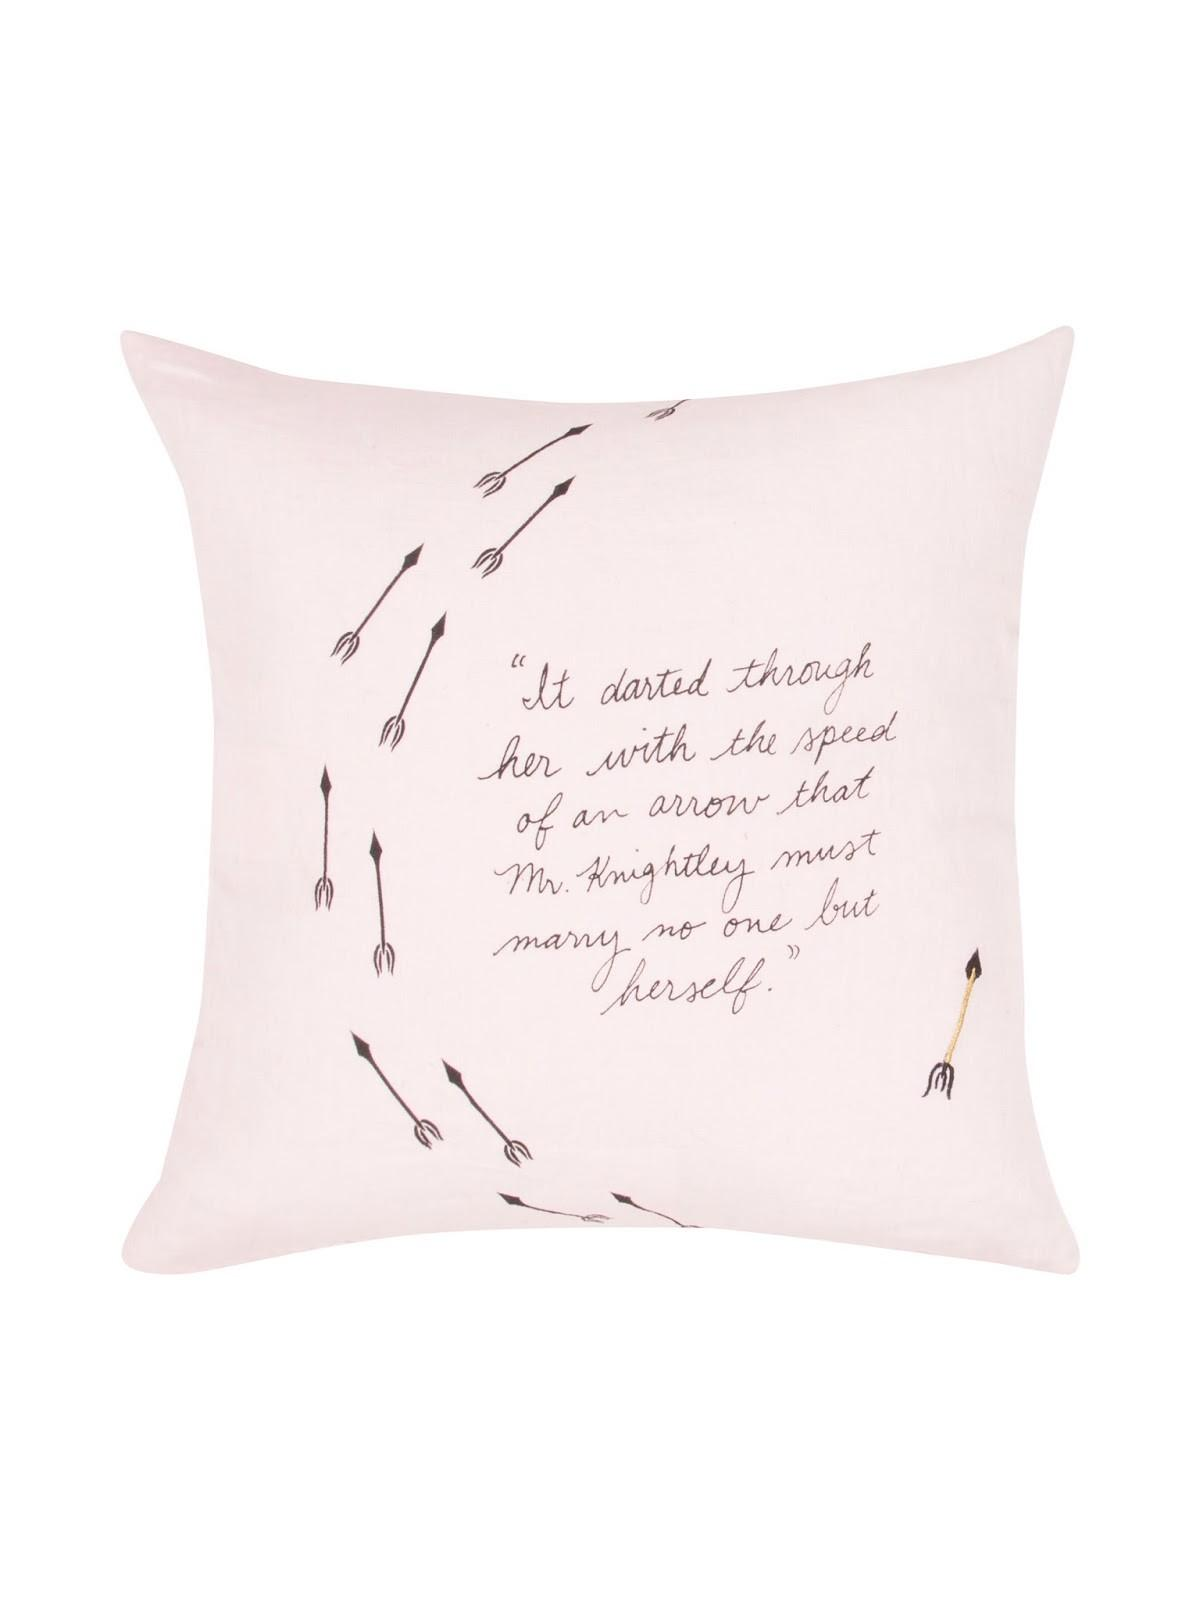 Mystery Playground Kate Spade Book Pillows